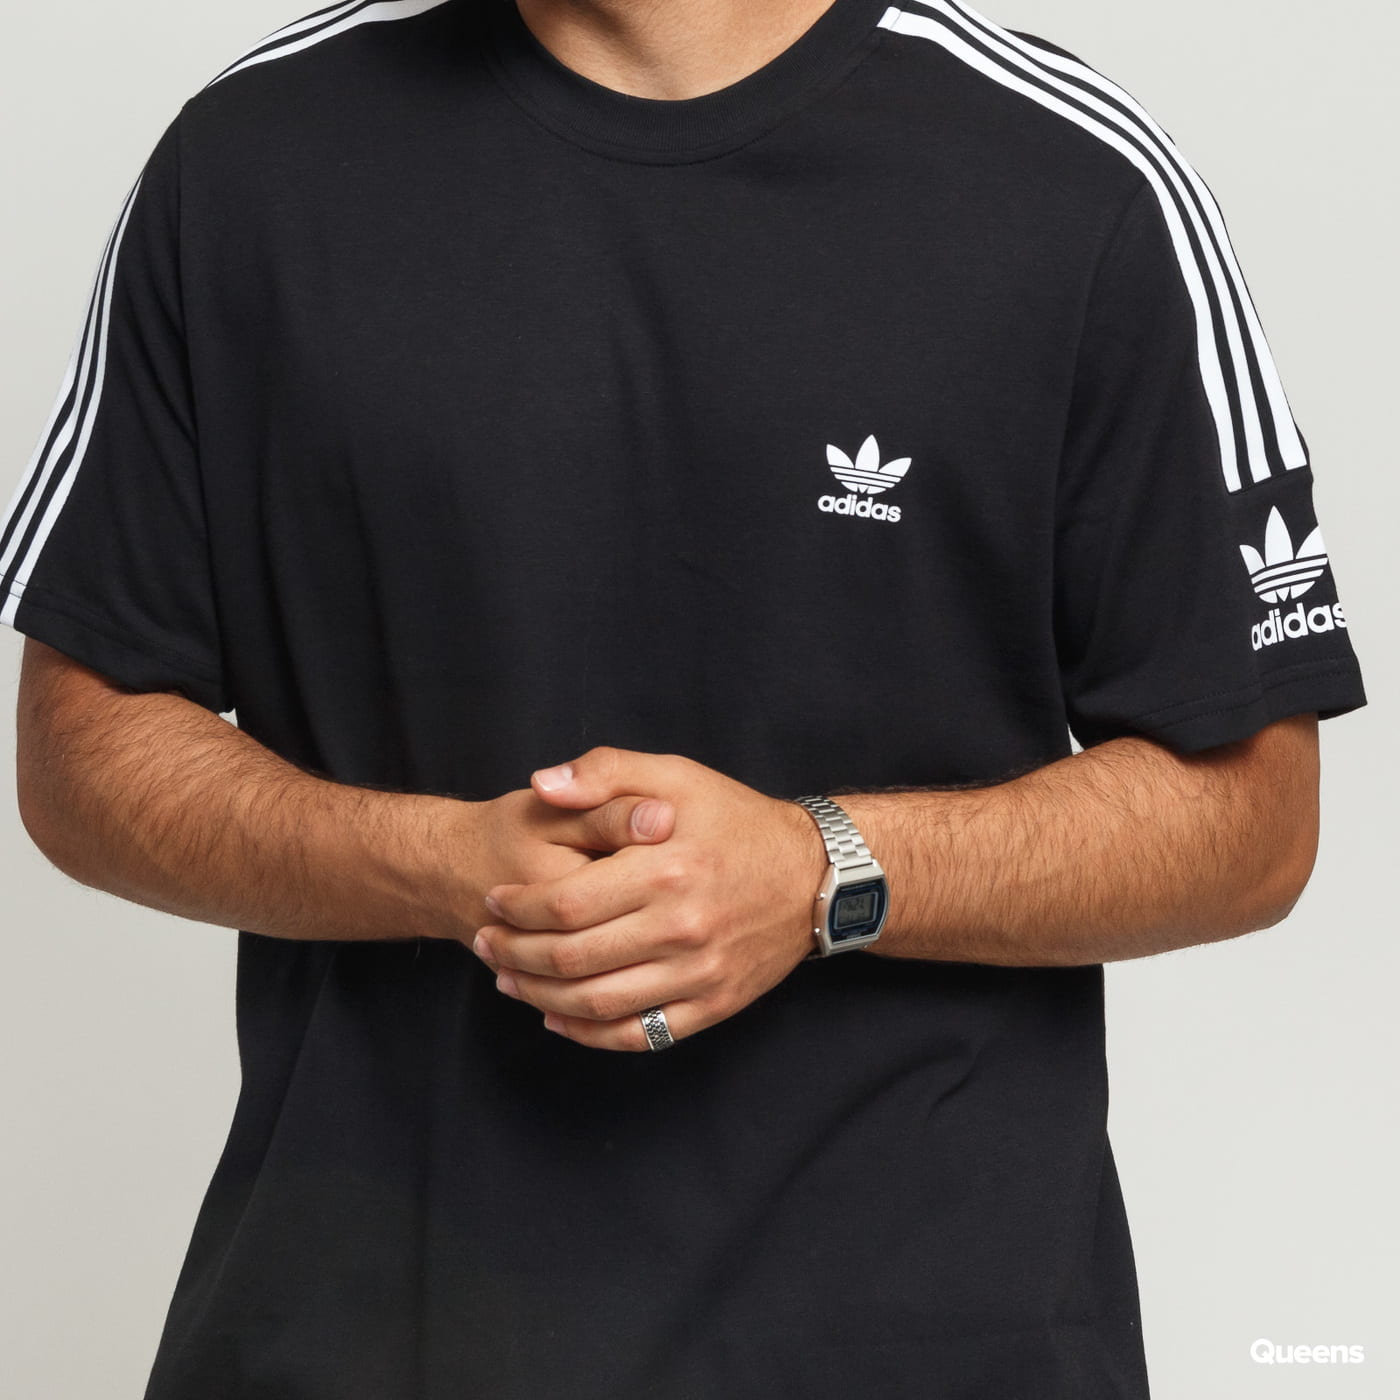 adidas Originals Tech Tee black satin